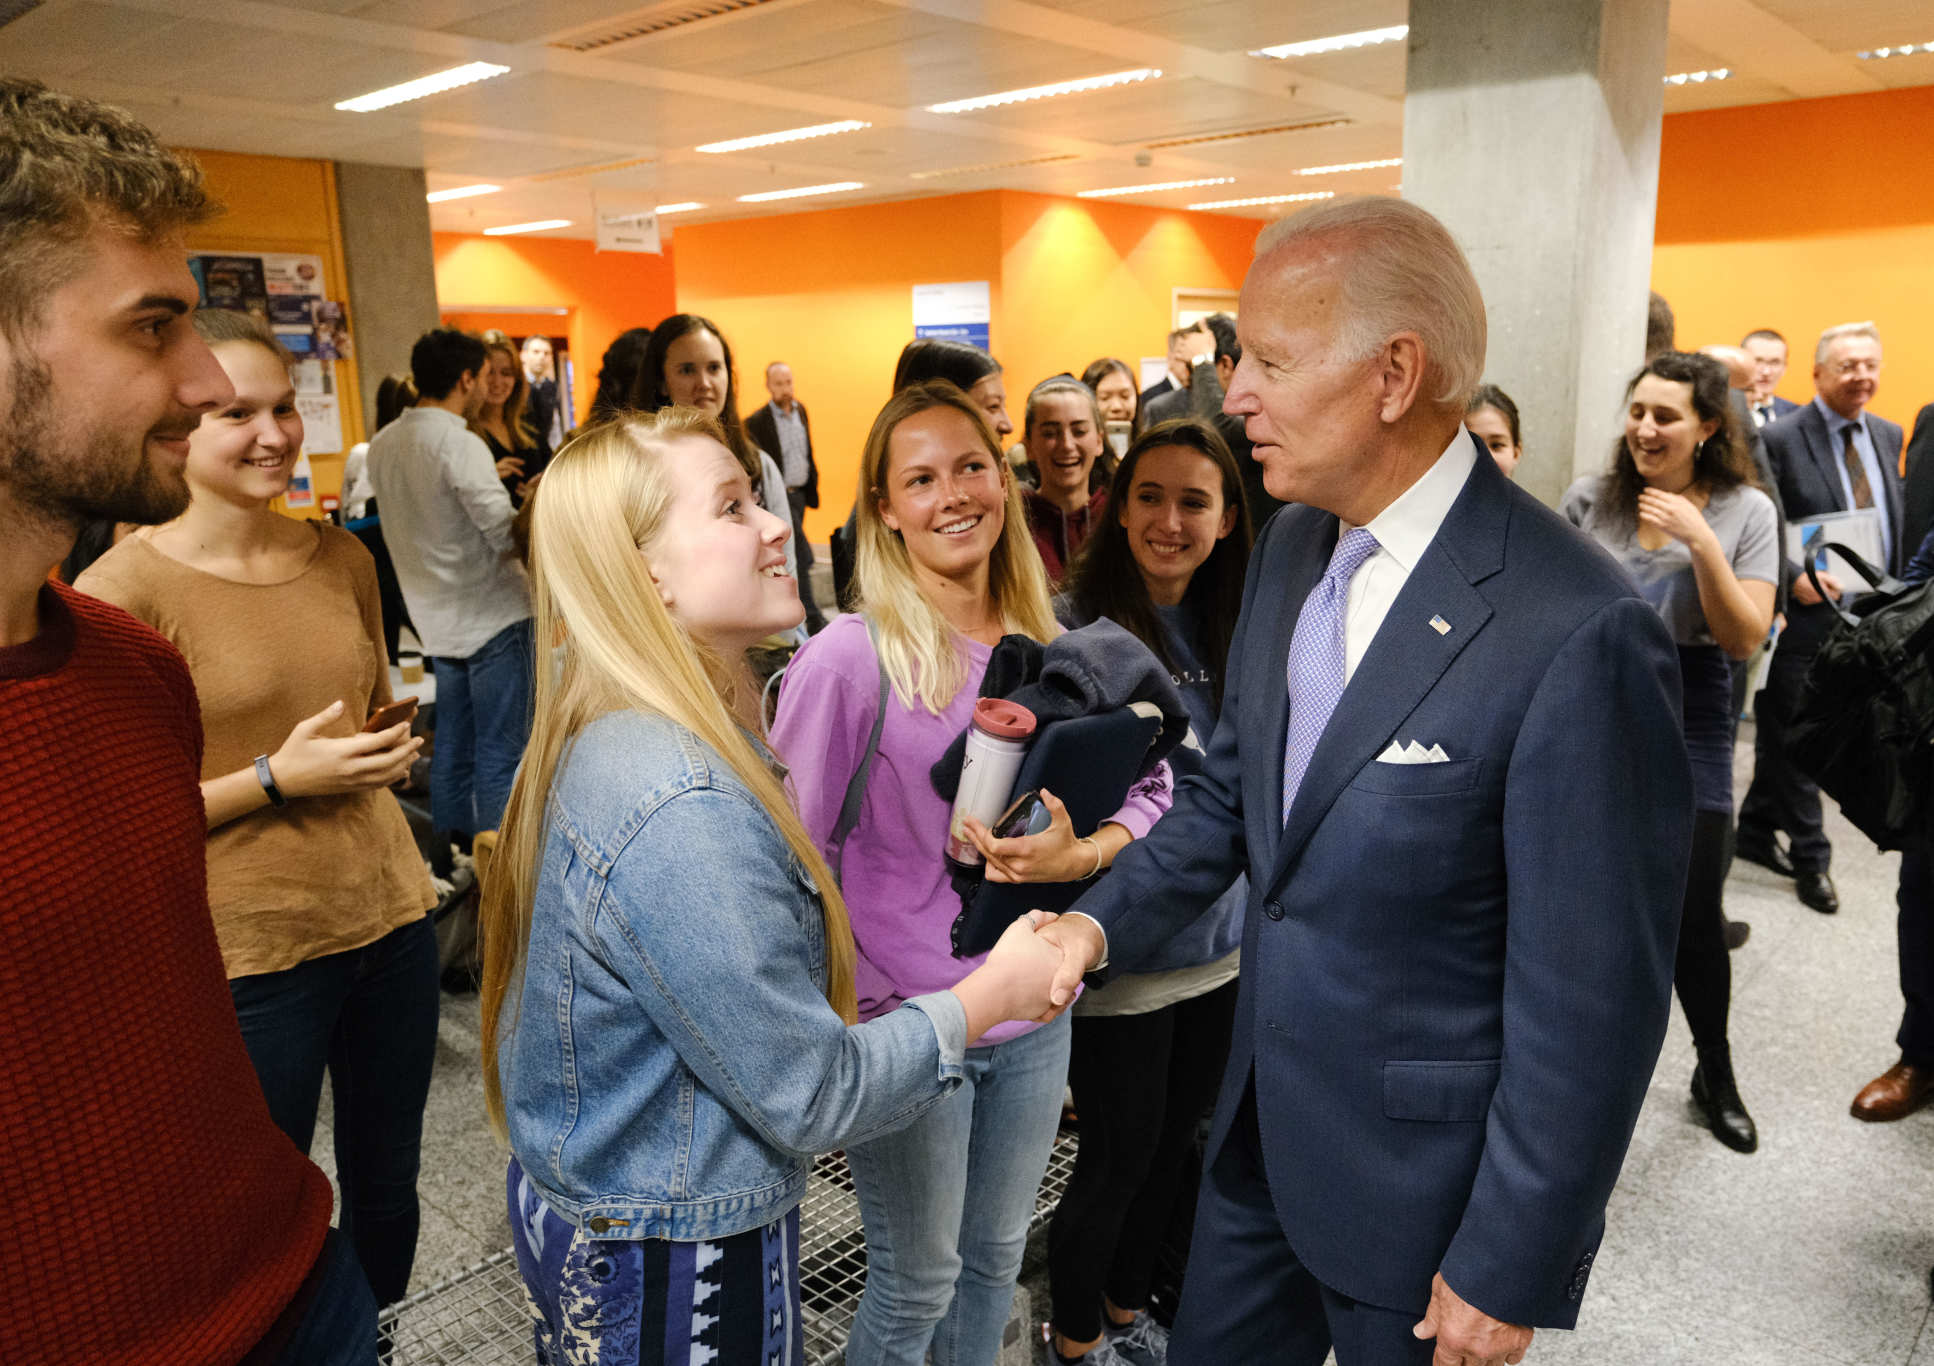 Vice President Biden spent time after his lecture meeting Imperial's talented students